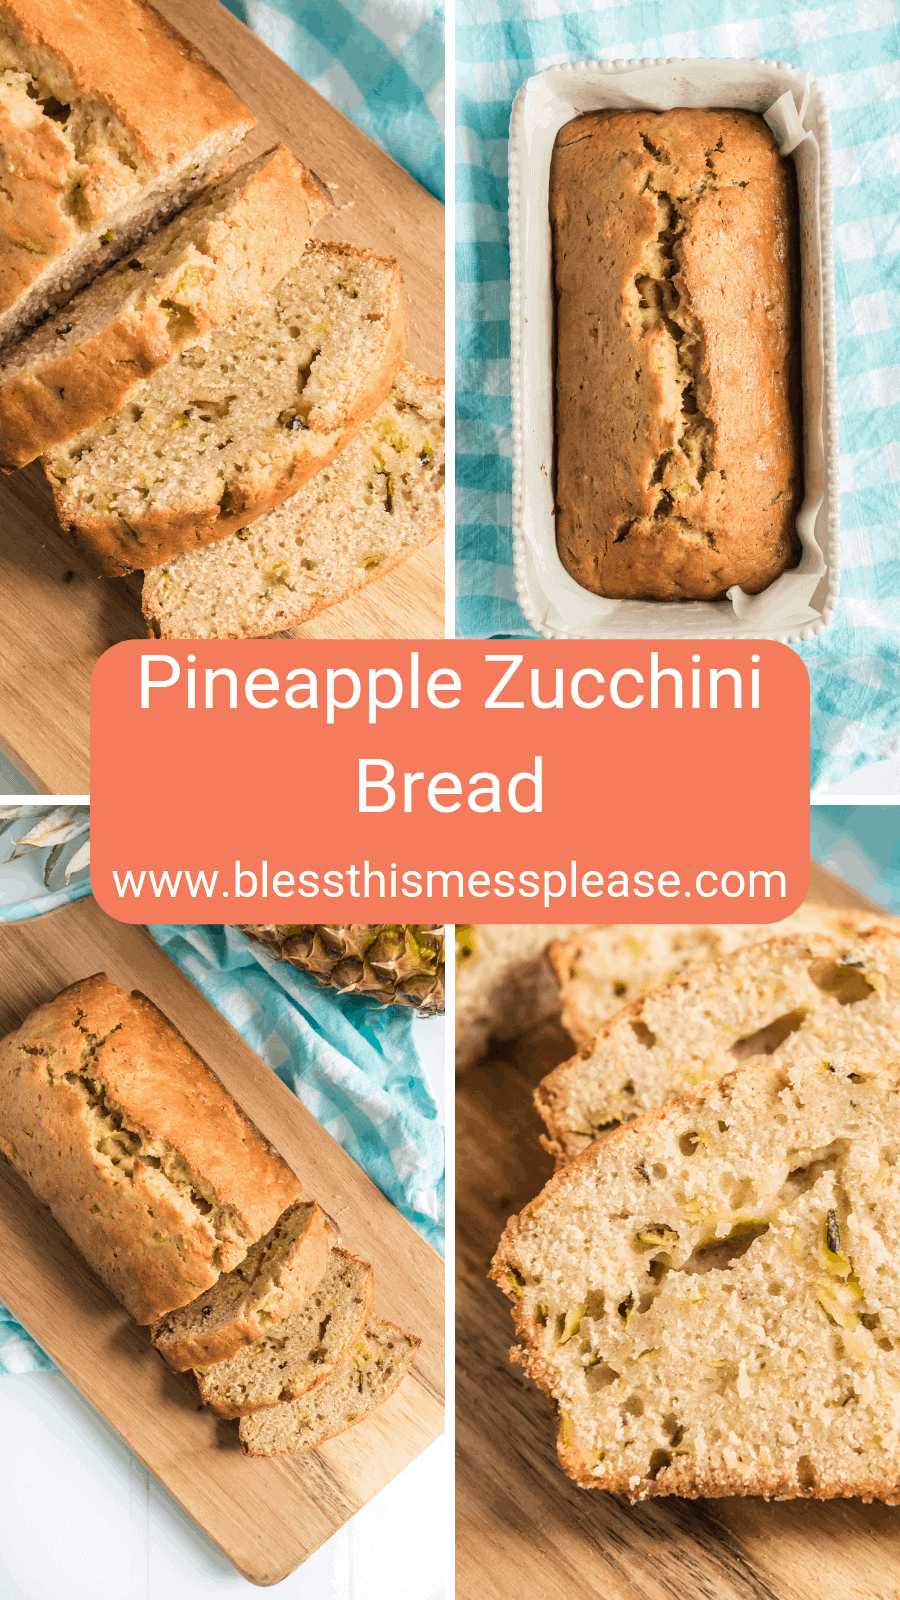 Moist and sweet, zucchini pineapple bread is a scrumptious and unexpectedly delicious treat that you need to try today!